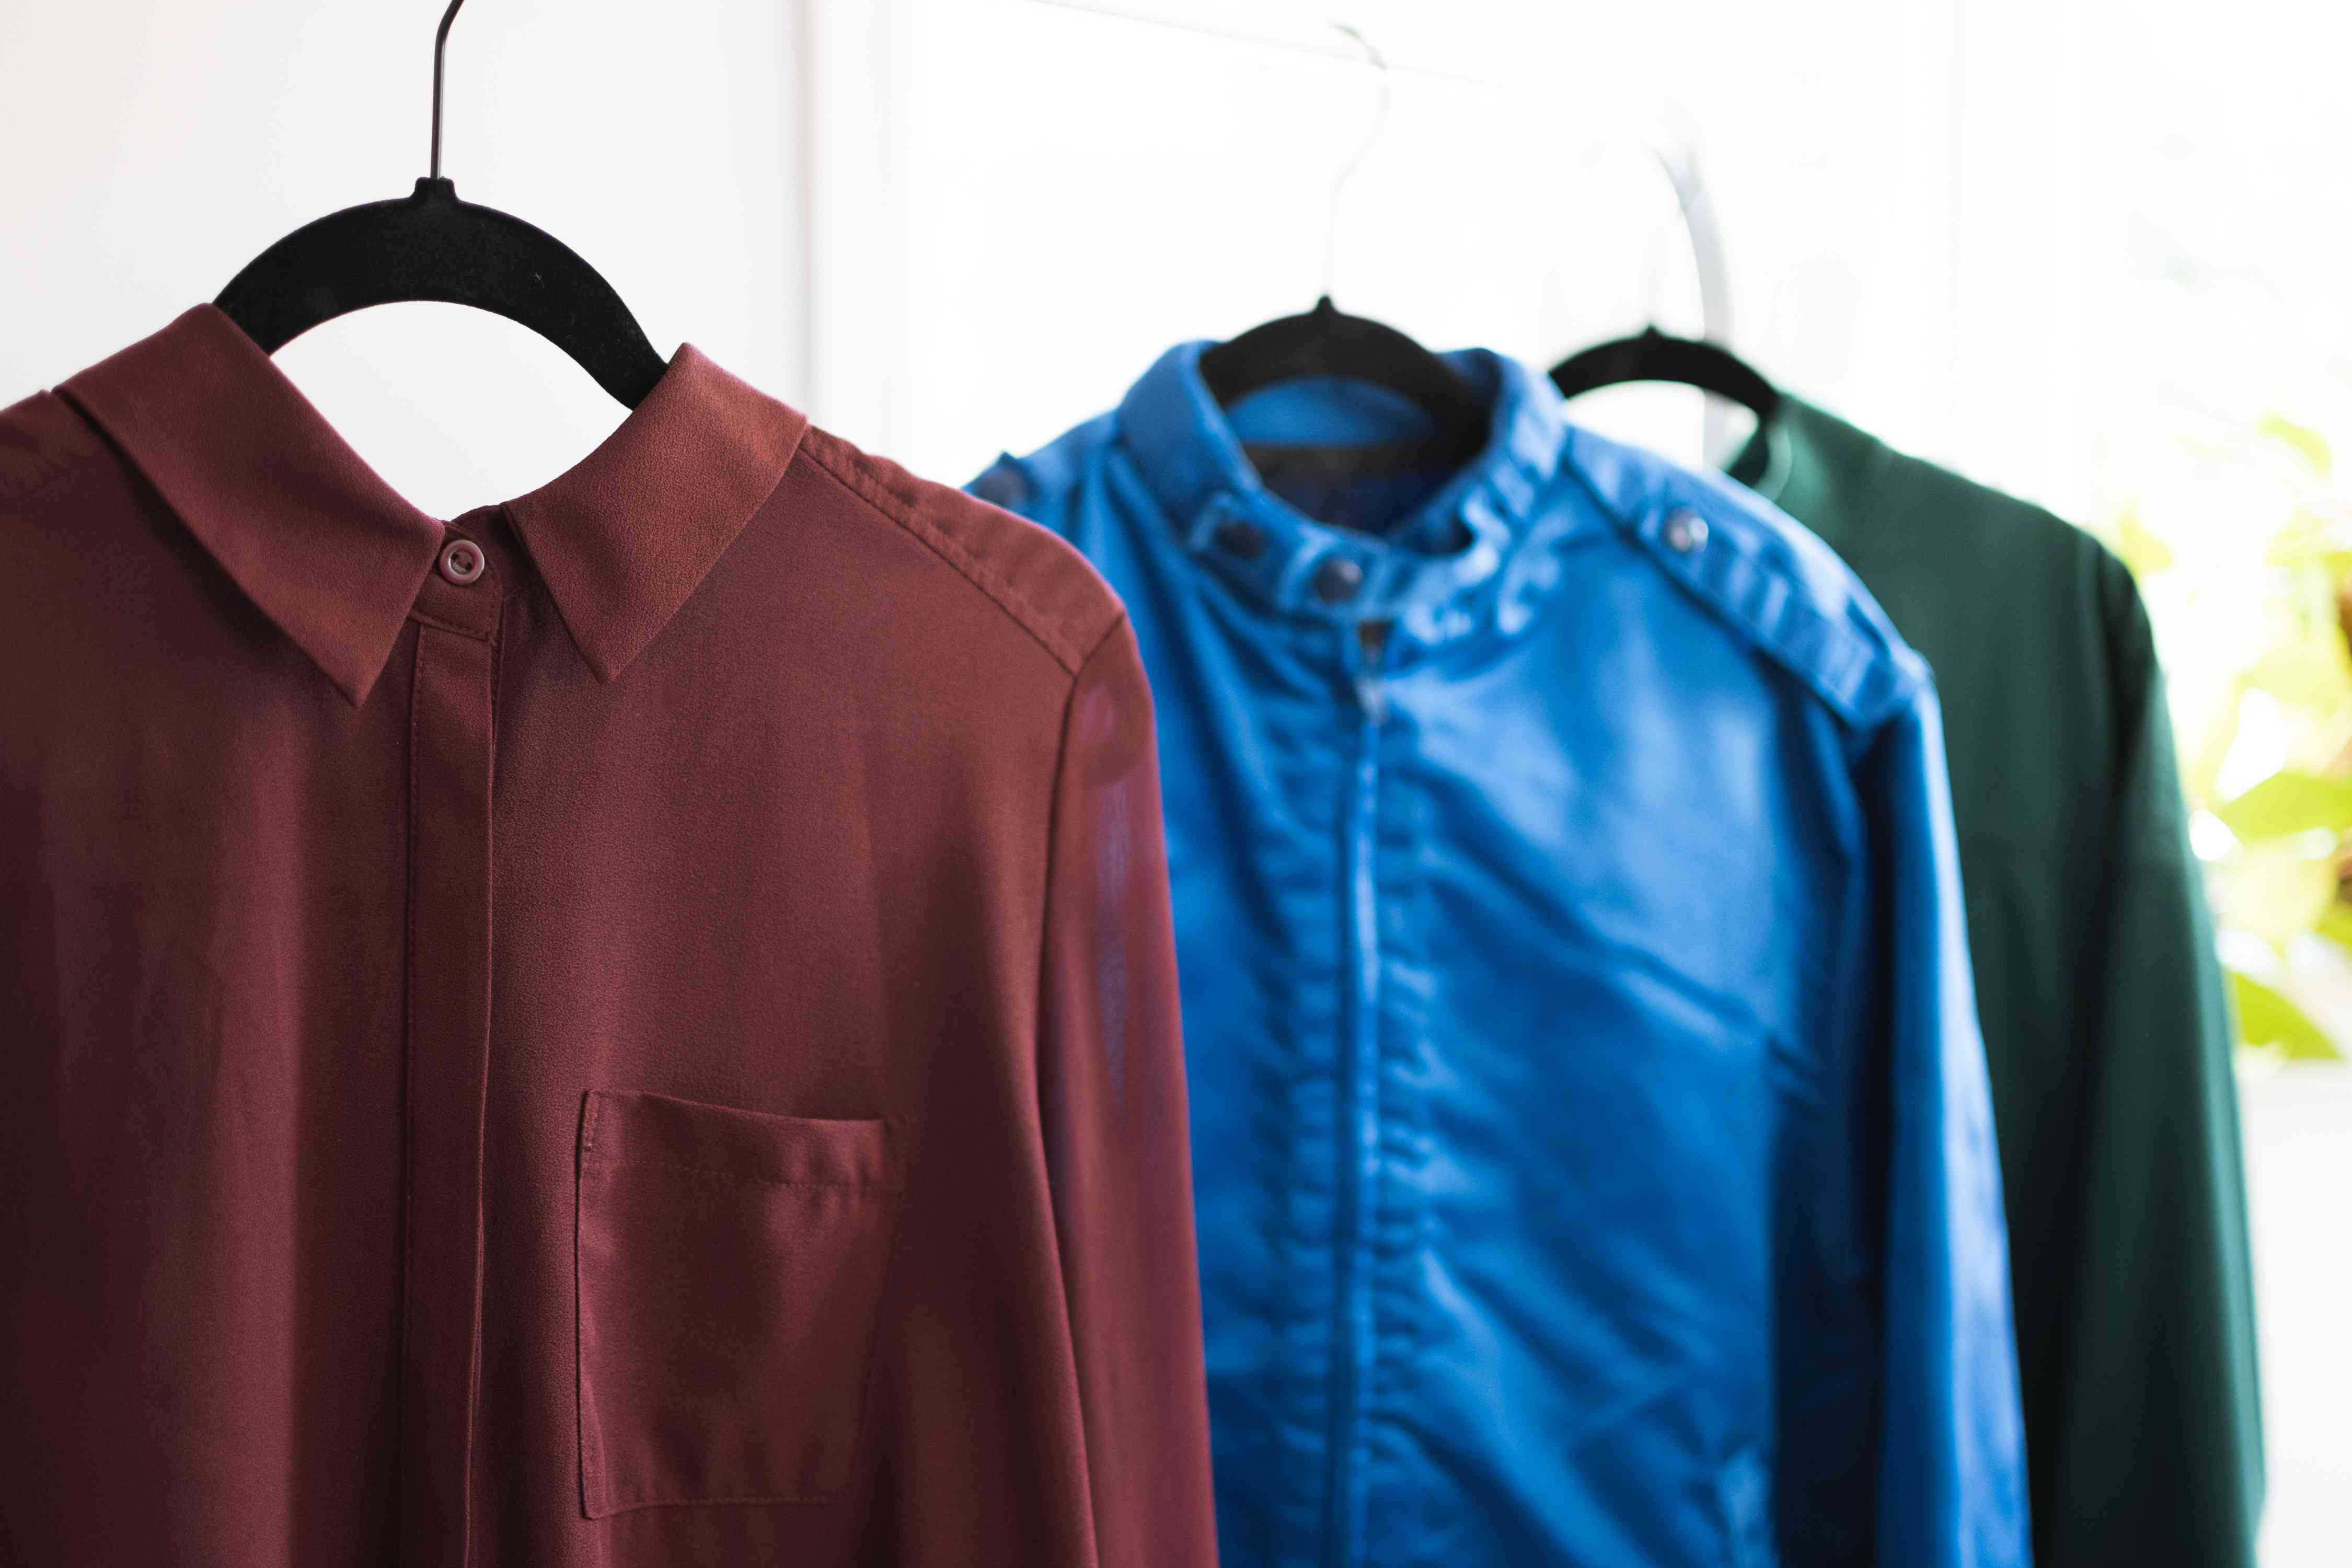 Red, blue and green polyester shirts and jackets on black hangers